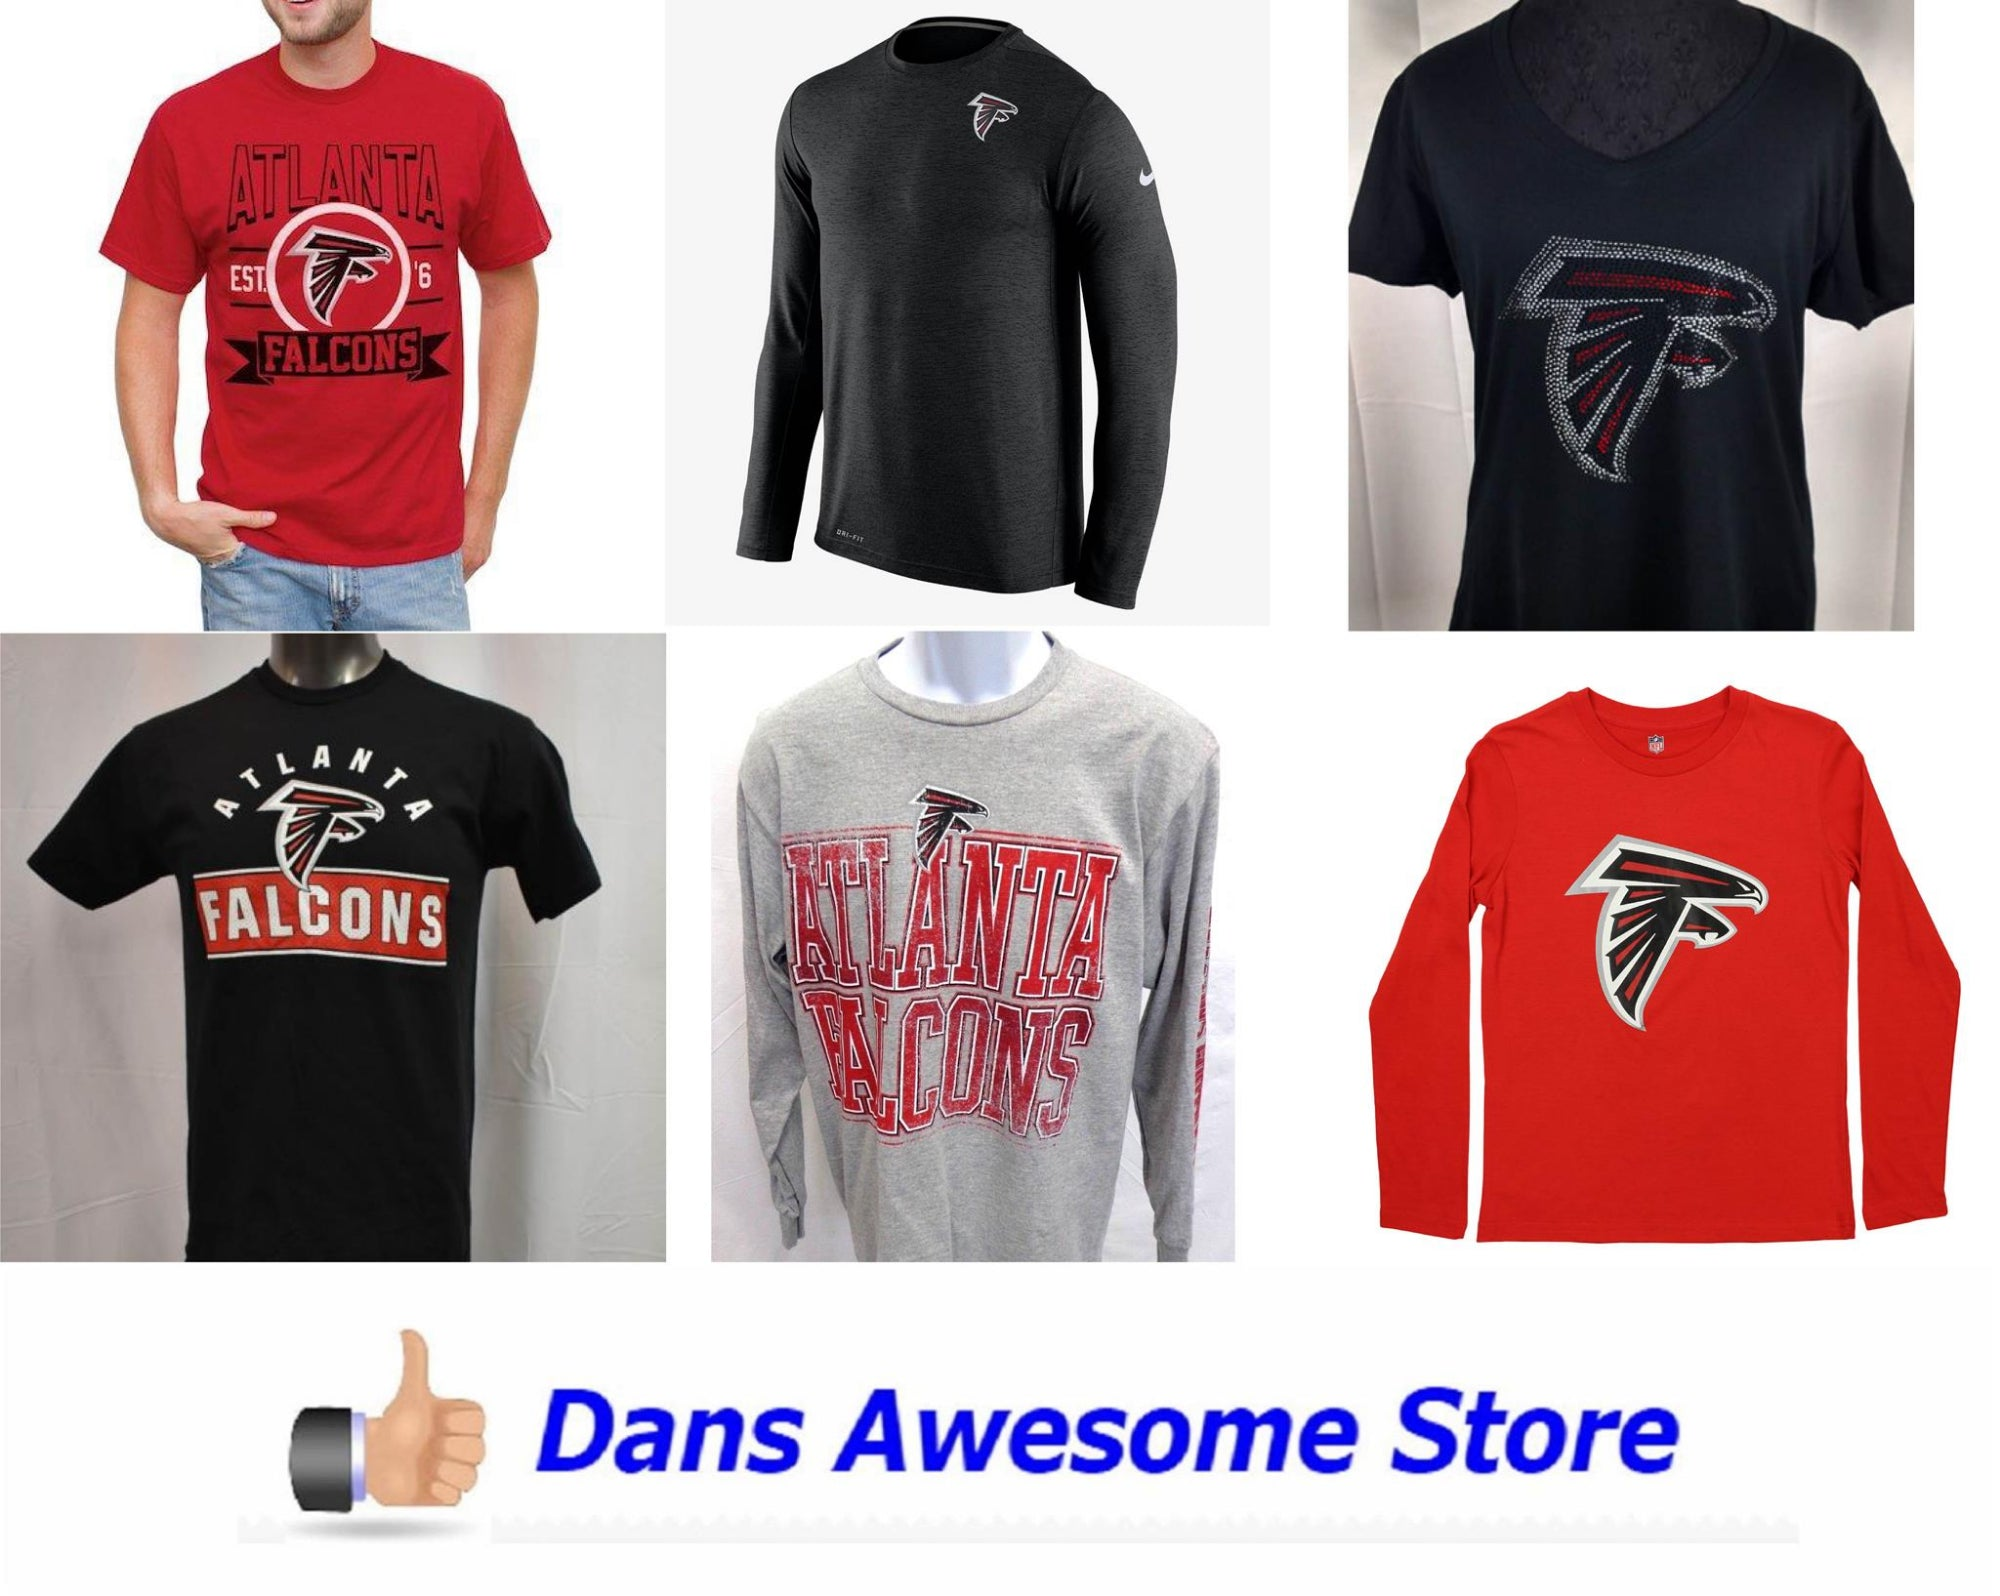 Atlanta Falcons Tee Shirt - Dans Awesome Store